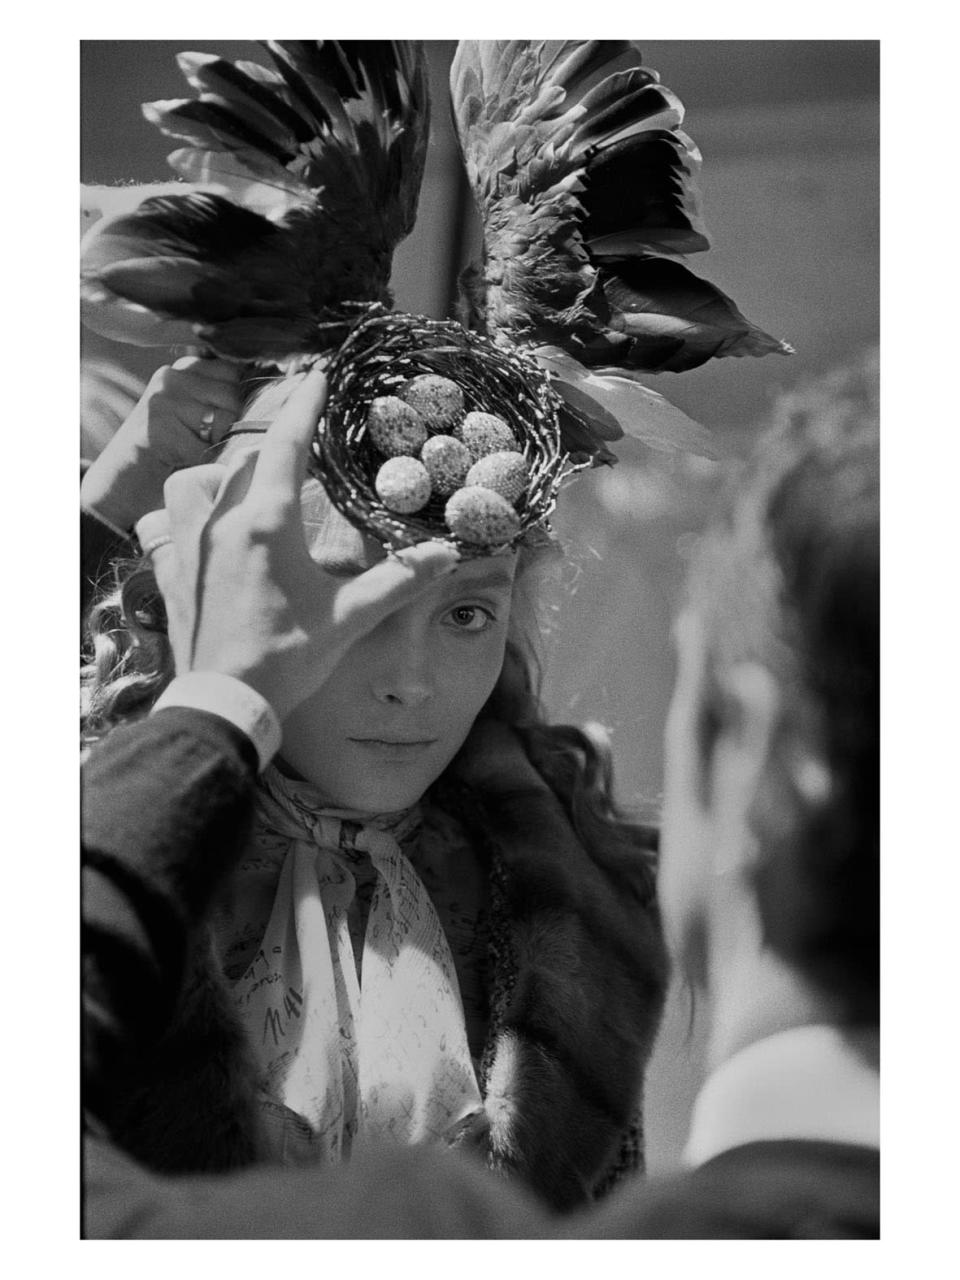 """Cycle, 2006,""""The Widows of Culloden,"""" fall 2006 with headpiece by Philip Treacy and Swarovski crystal eggs by Shaun Leane. - Credit: Anna Ray/Courtesy of Barrett Barrera Projects & RKL Consulting"""